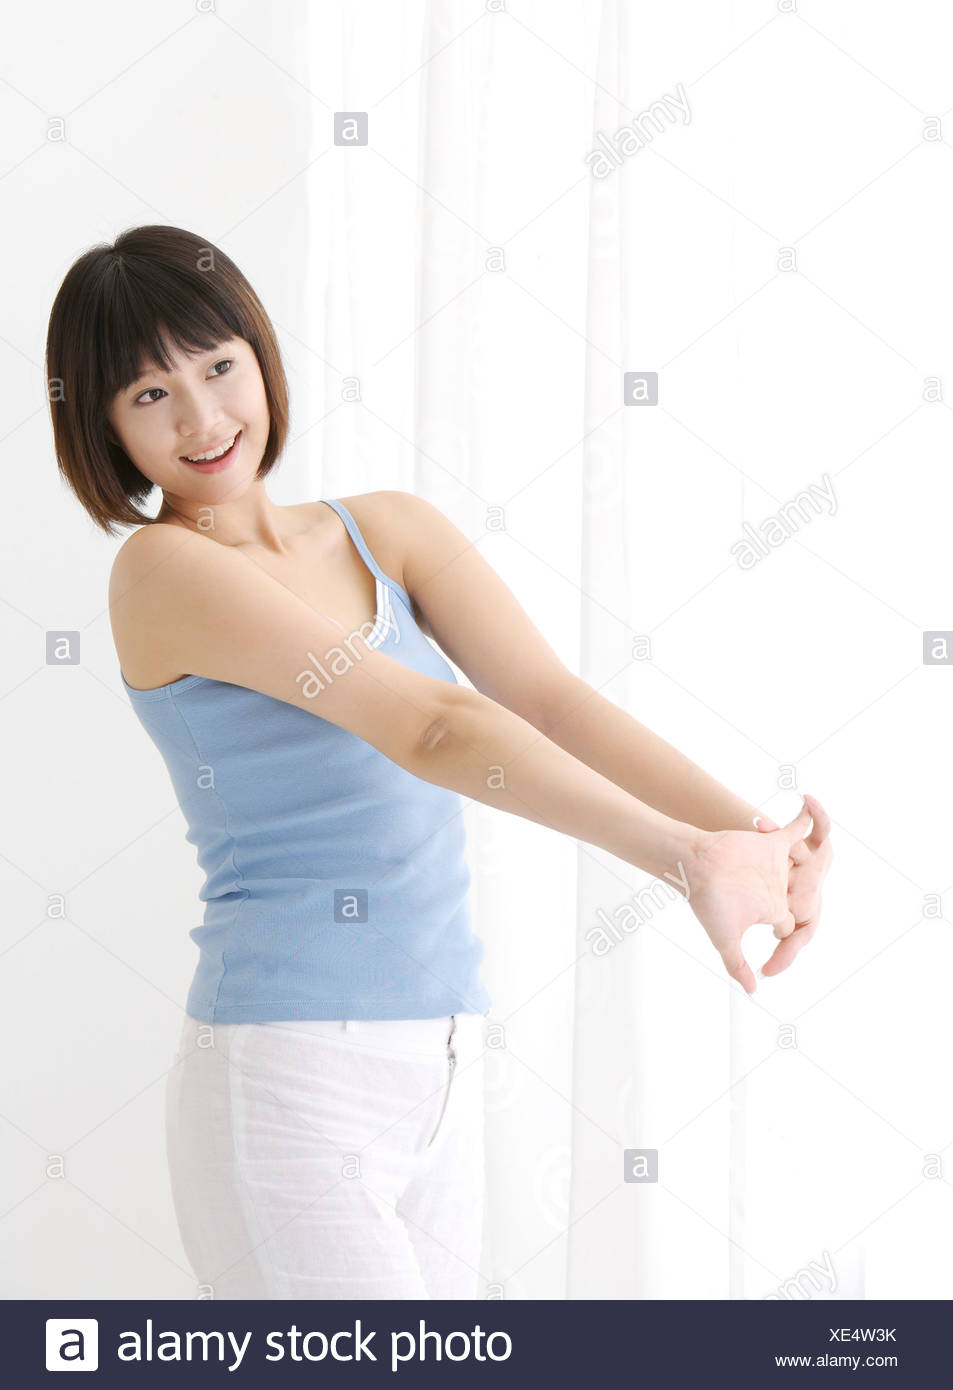 Young woman stretching arms in front of brast looking away